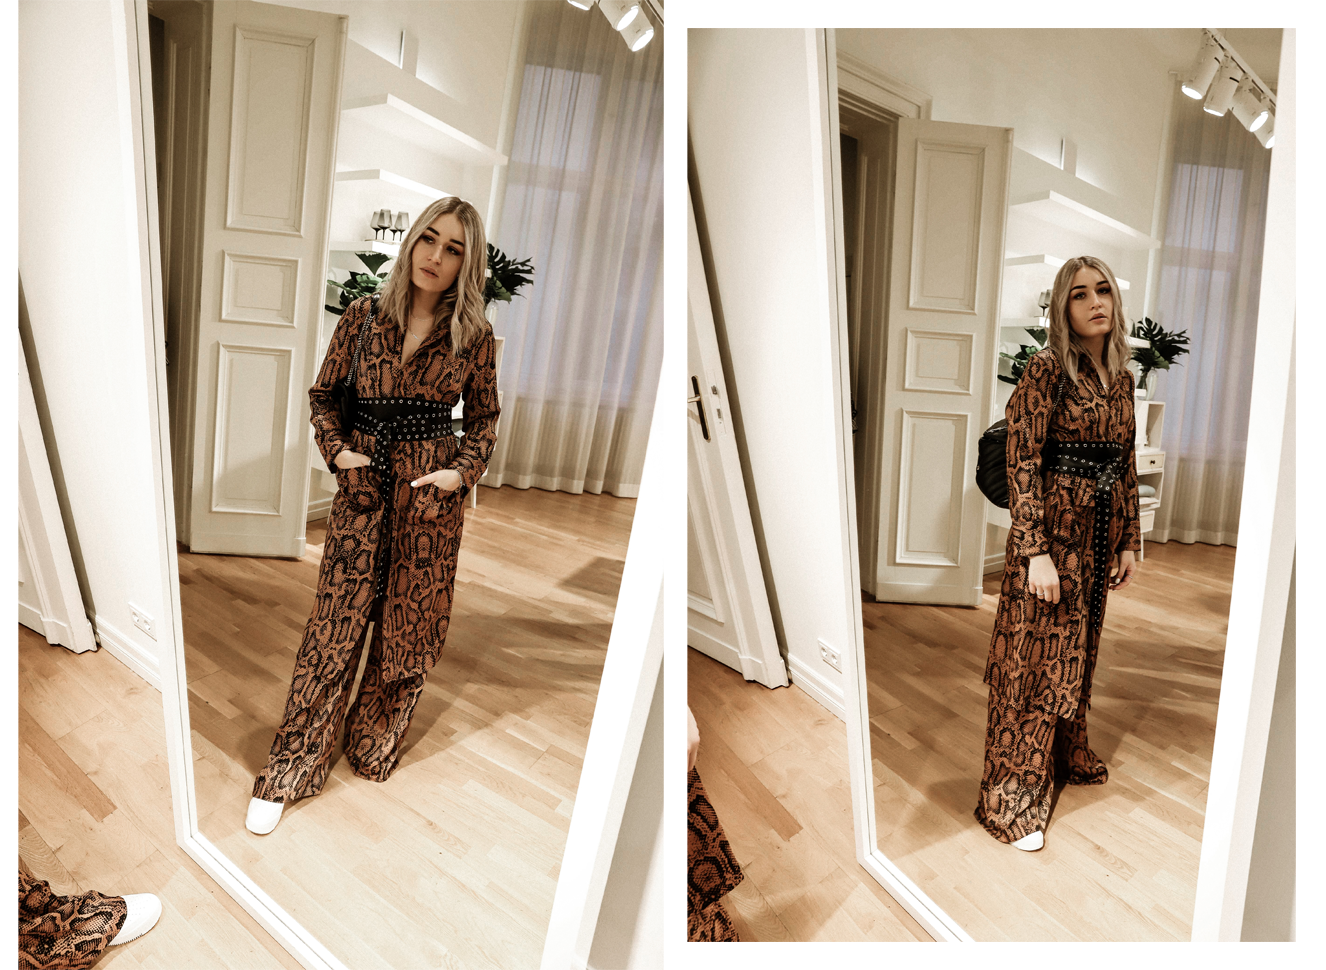 Lauralamode Fashion Week Hundm H&M Fscxh&m Fashioncouncilgermany Fsc Showroom Berlin Fashion Week Fashion Week 2019 Fashion Blogger Berlin Munich Outfit Ootd23